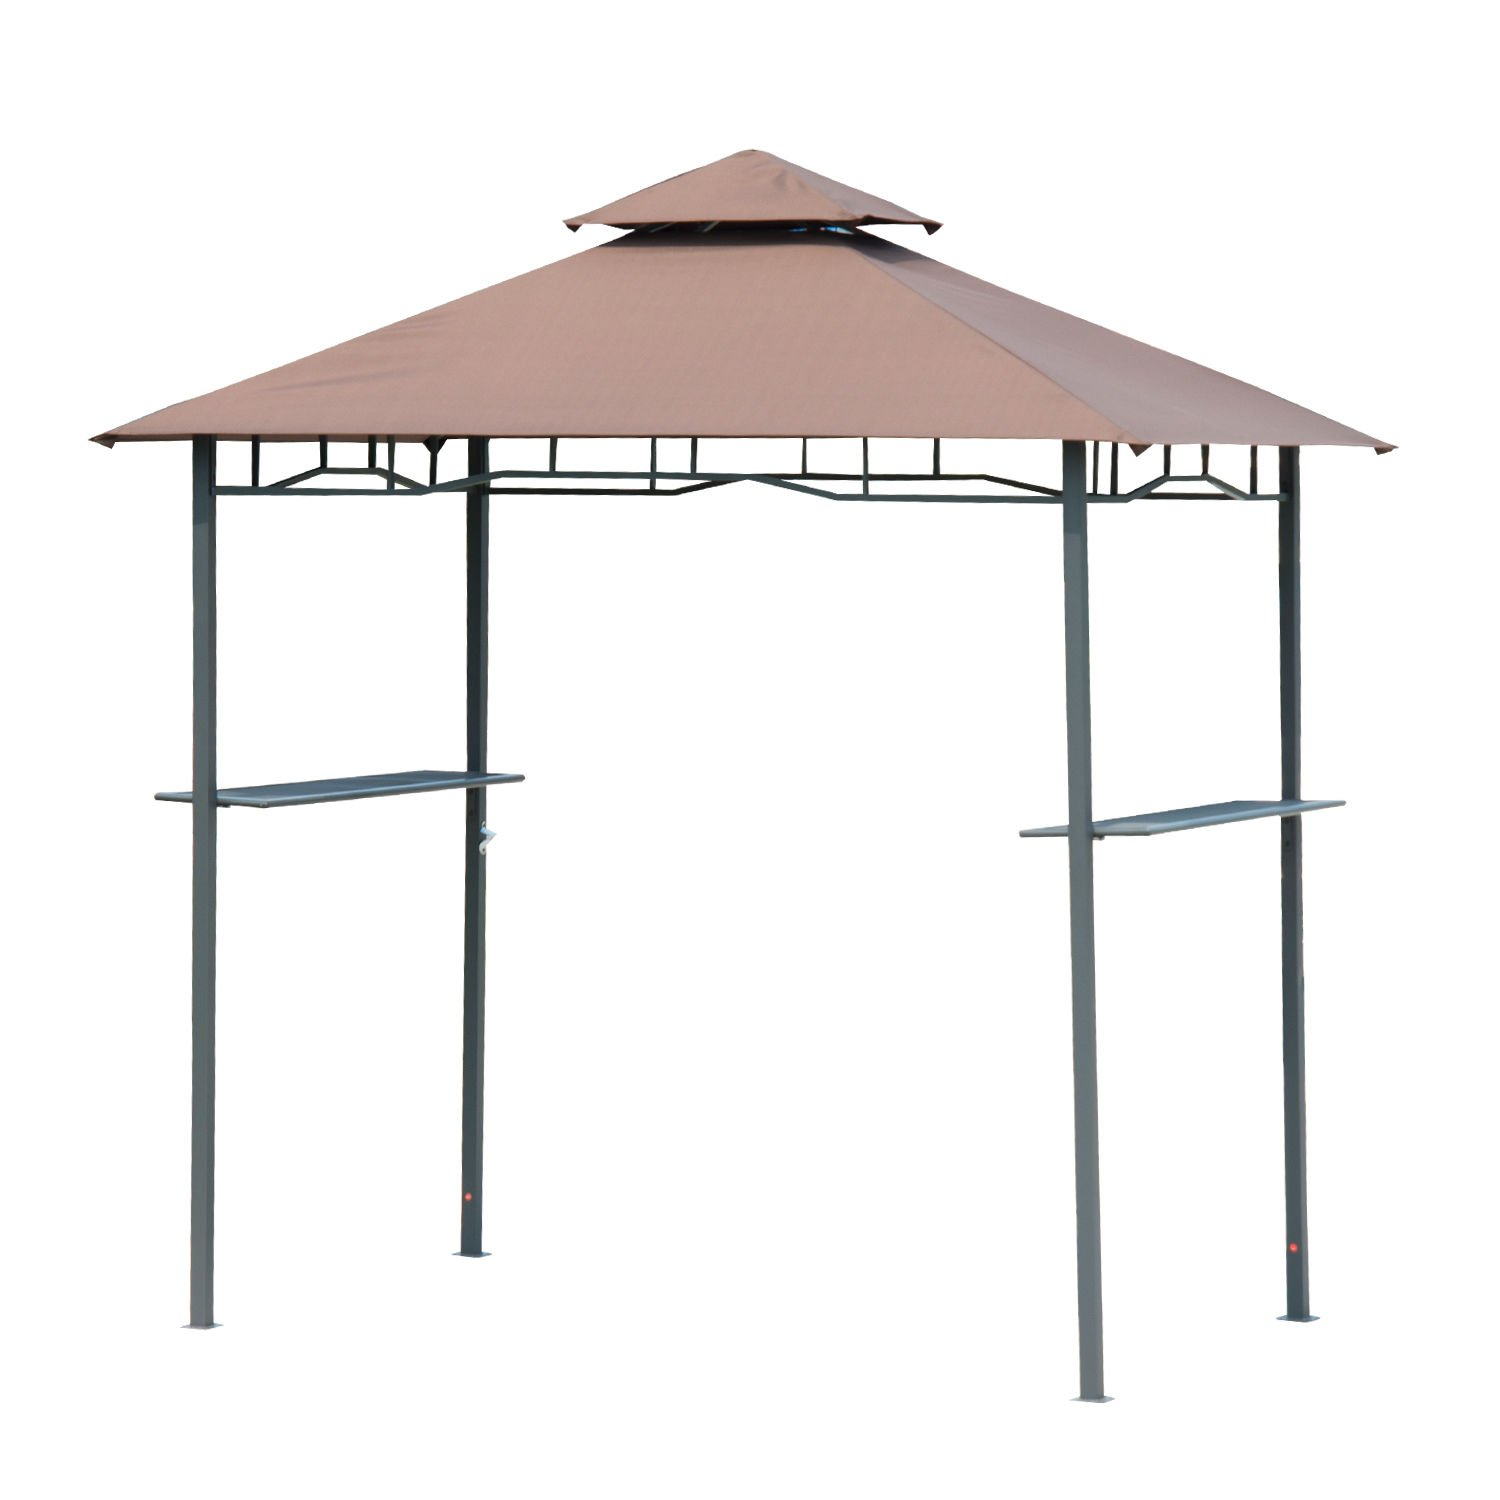 Outdoor 8FT Double-tier BBQ Grill Canopy Barbecue Shelter Tent Patio Deck Cover by Tamsun